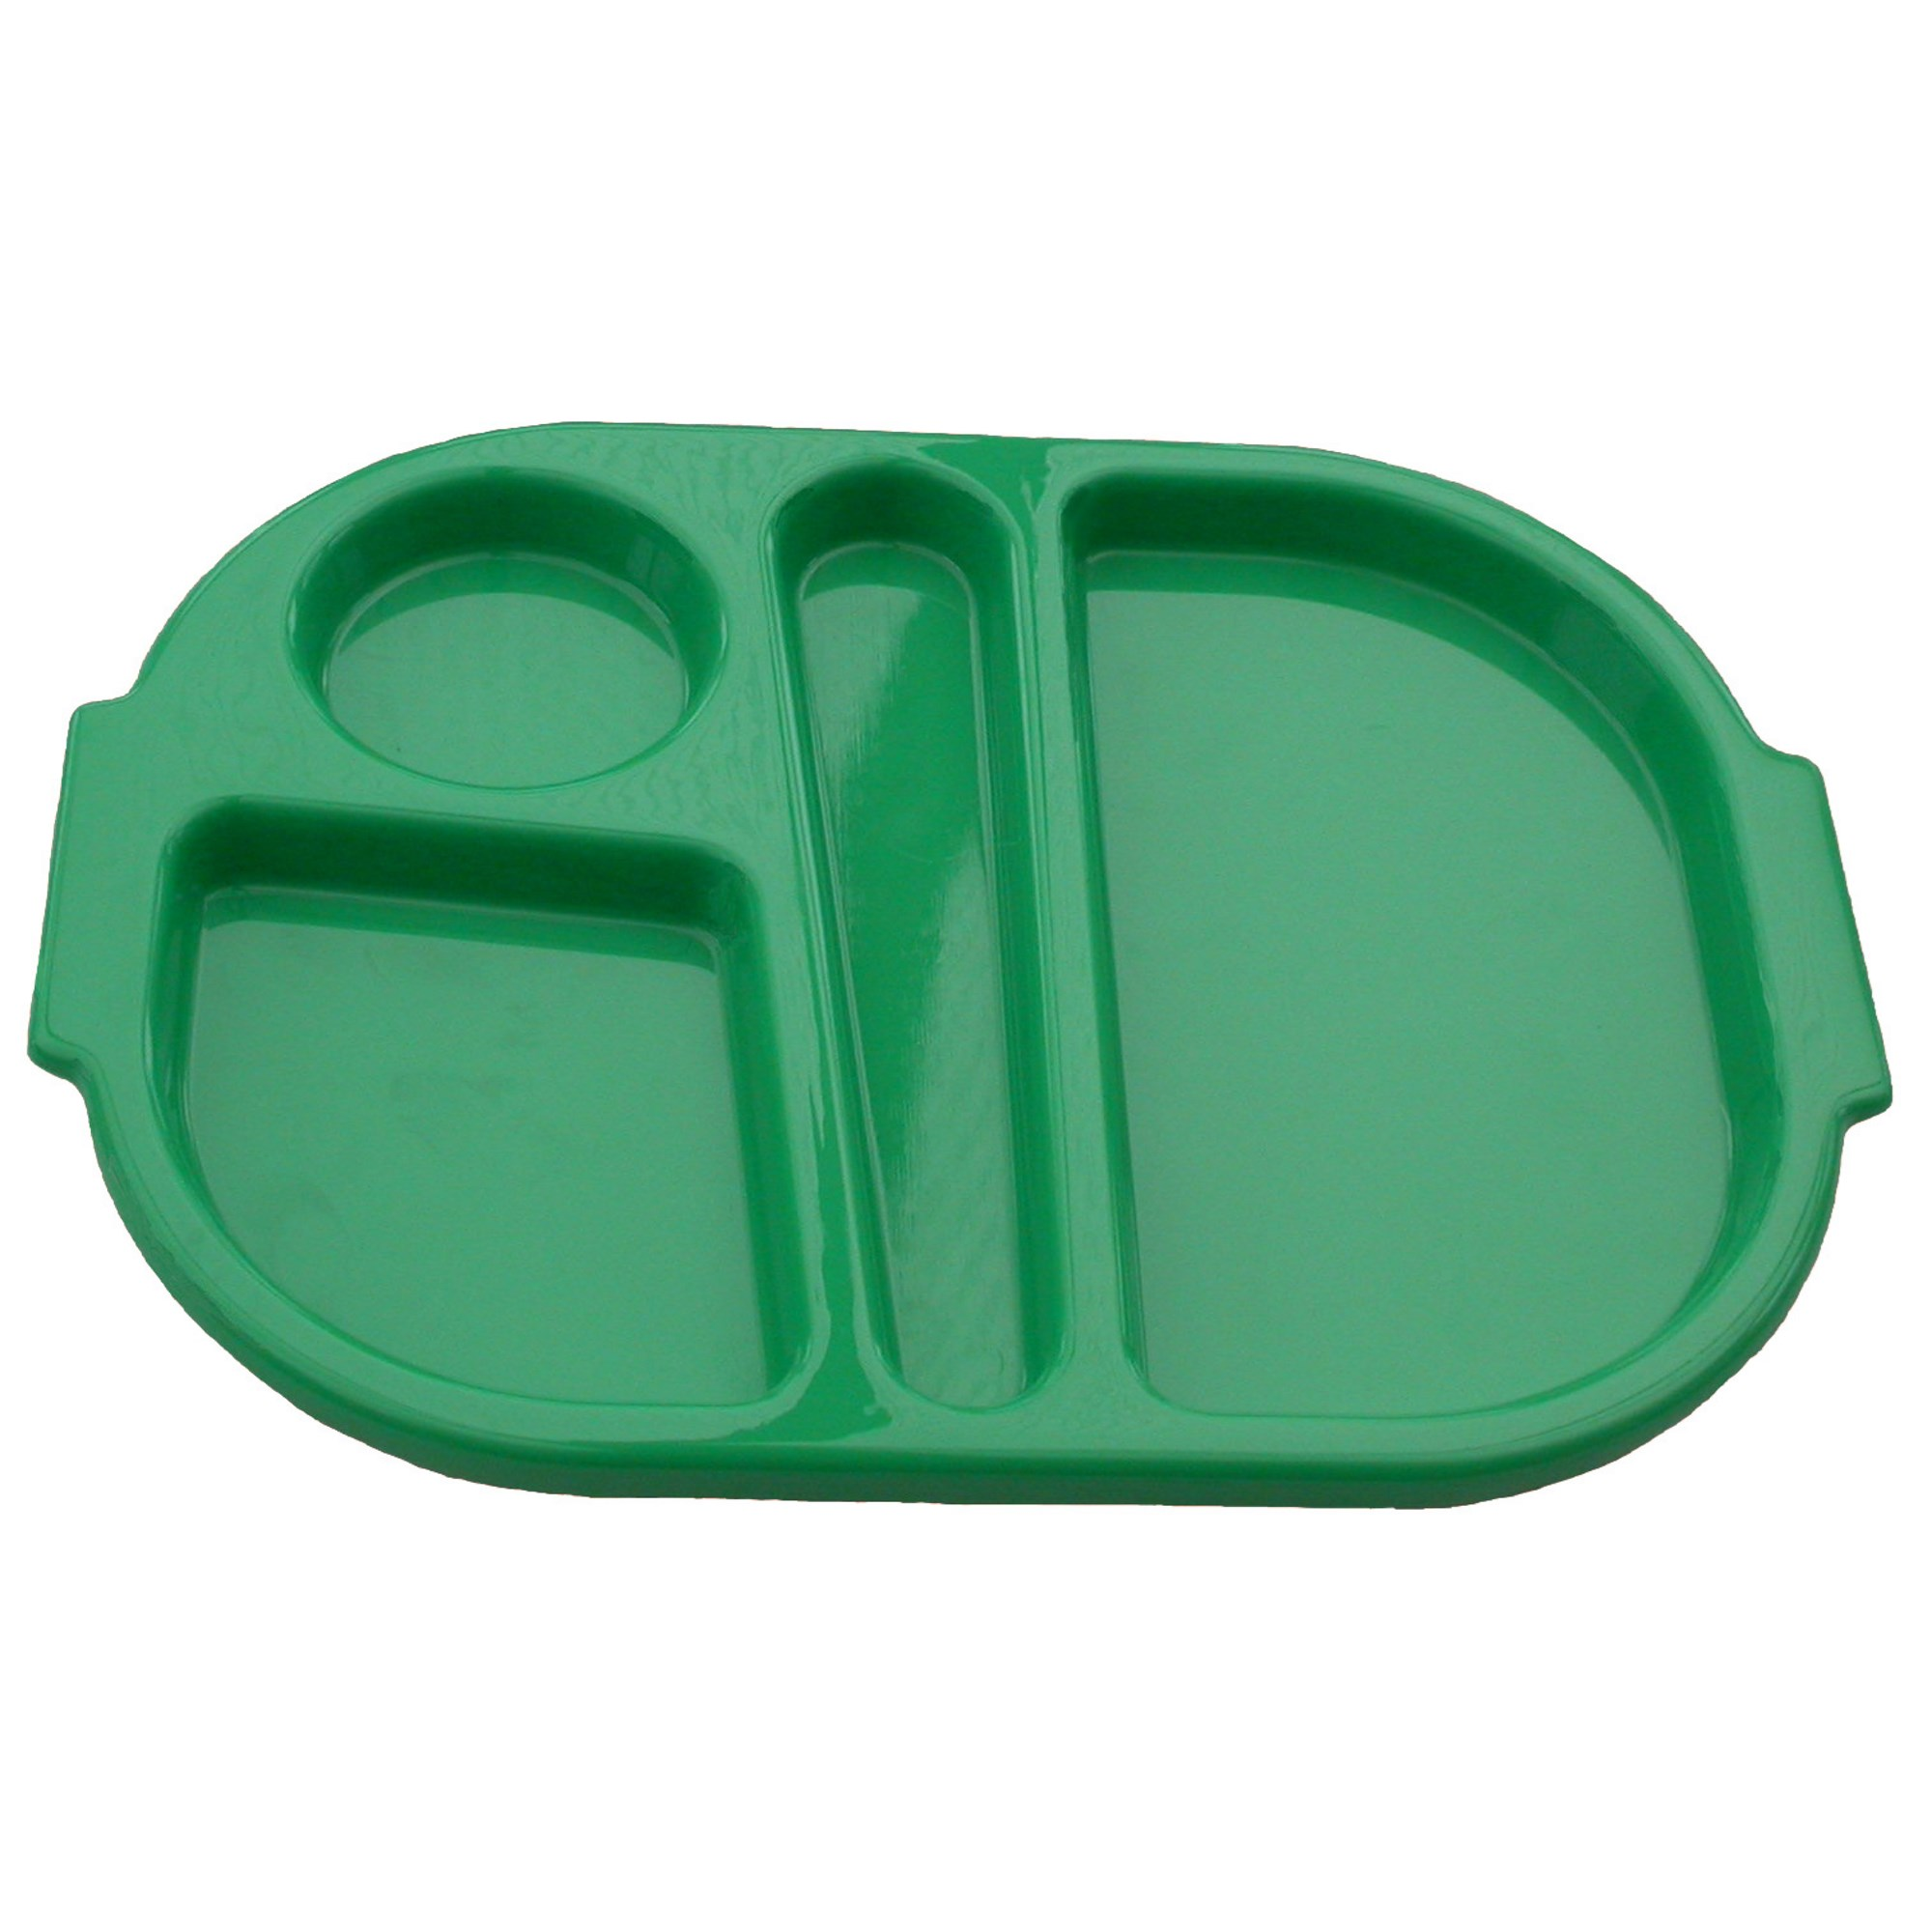 Harfield Polycarbonate Meal Tray Large Green (Pack of 10)